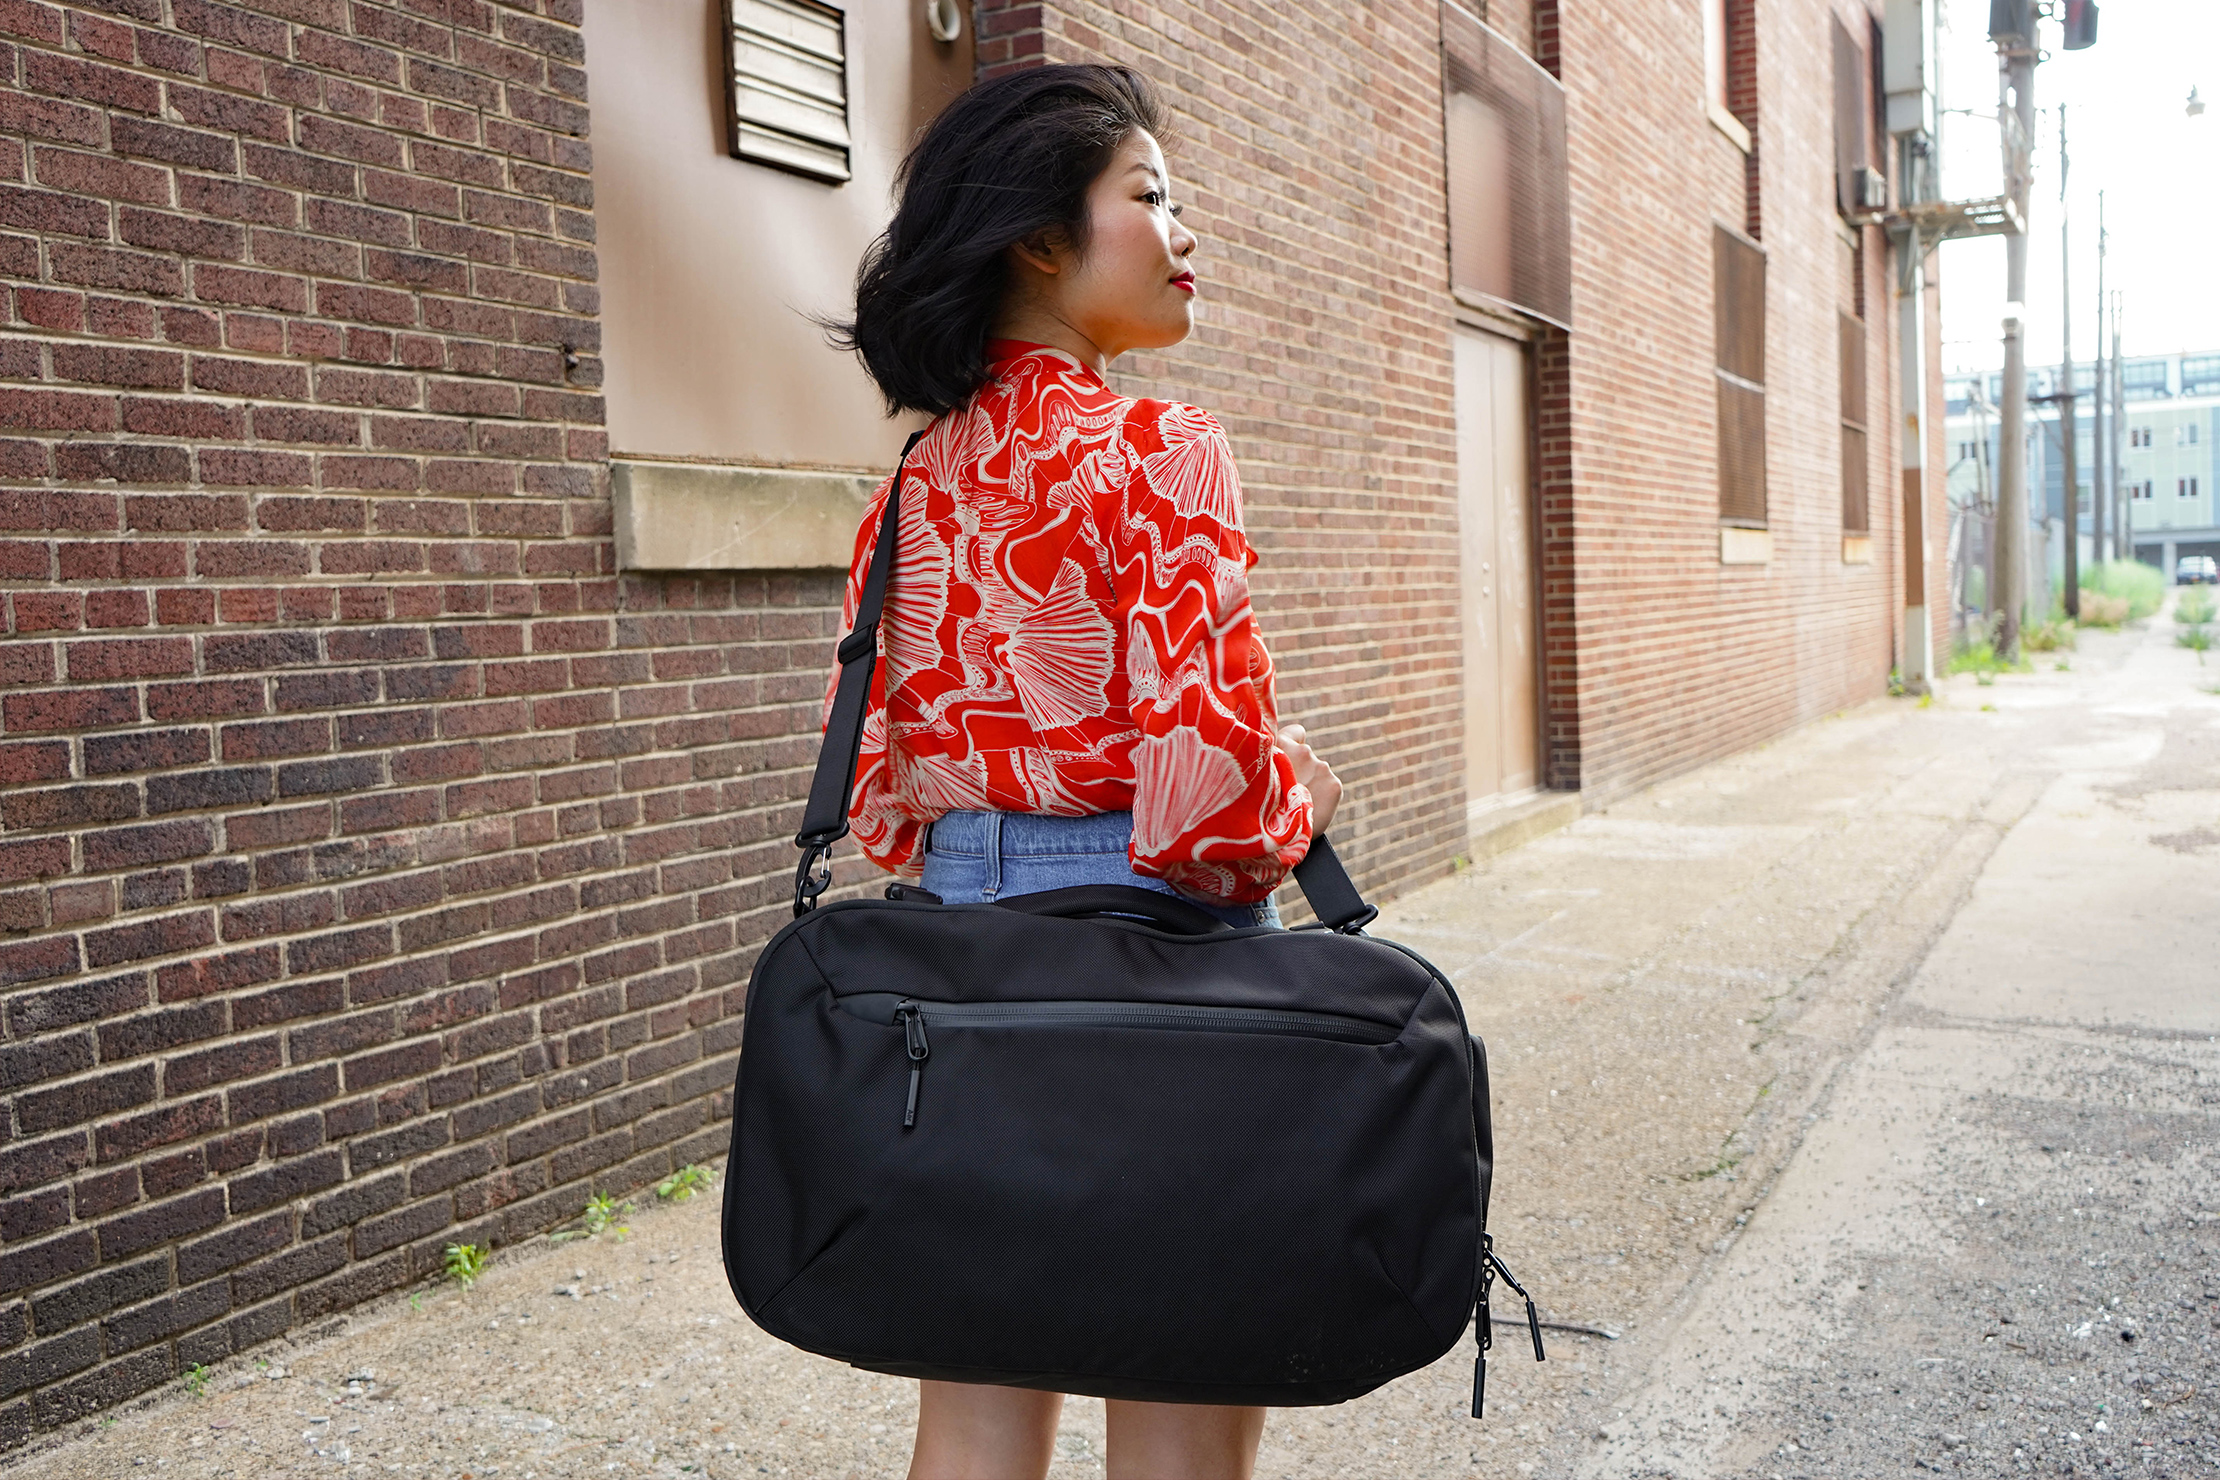 Wearing The Aer Travel Duffel Crossbody